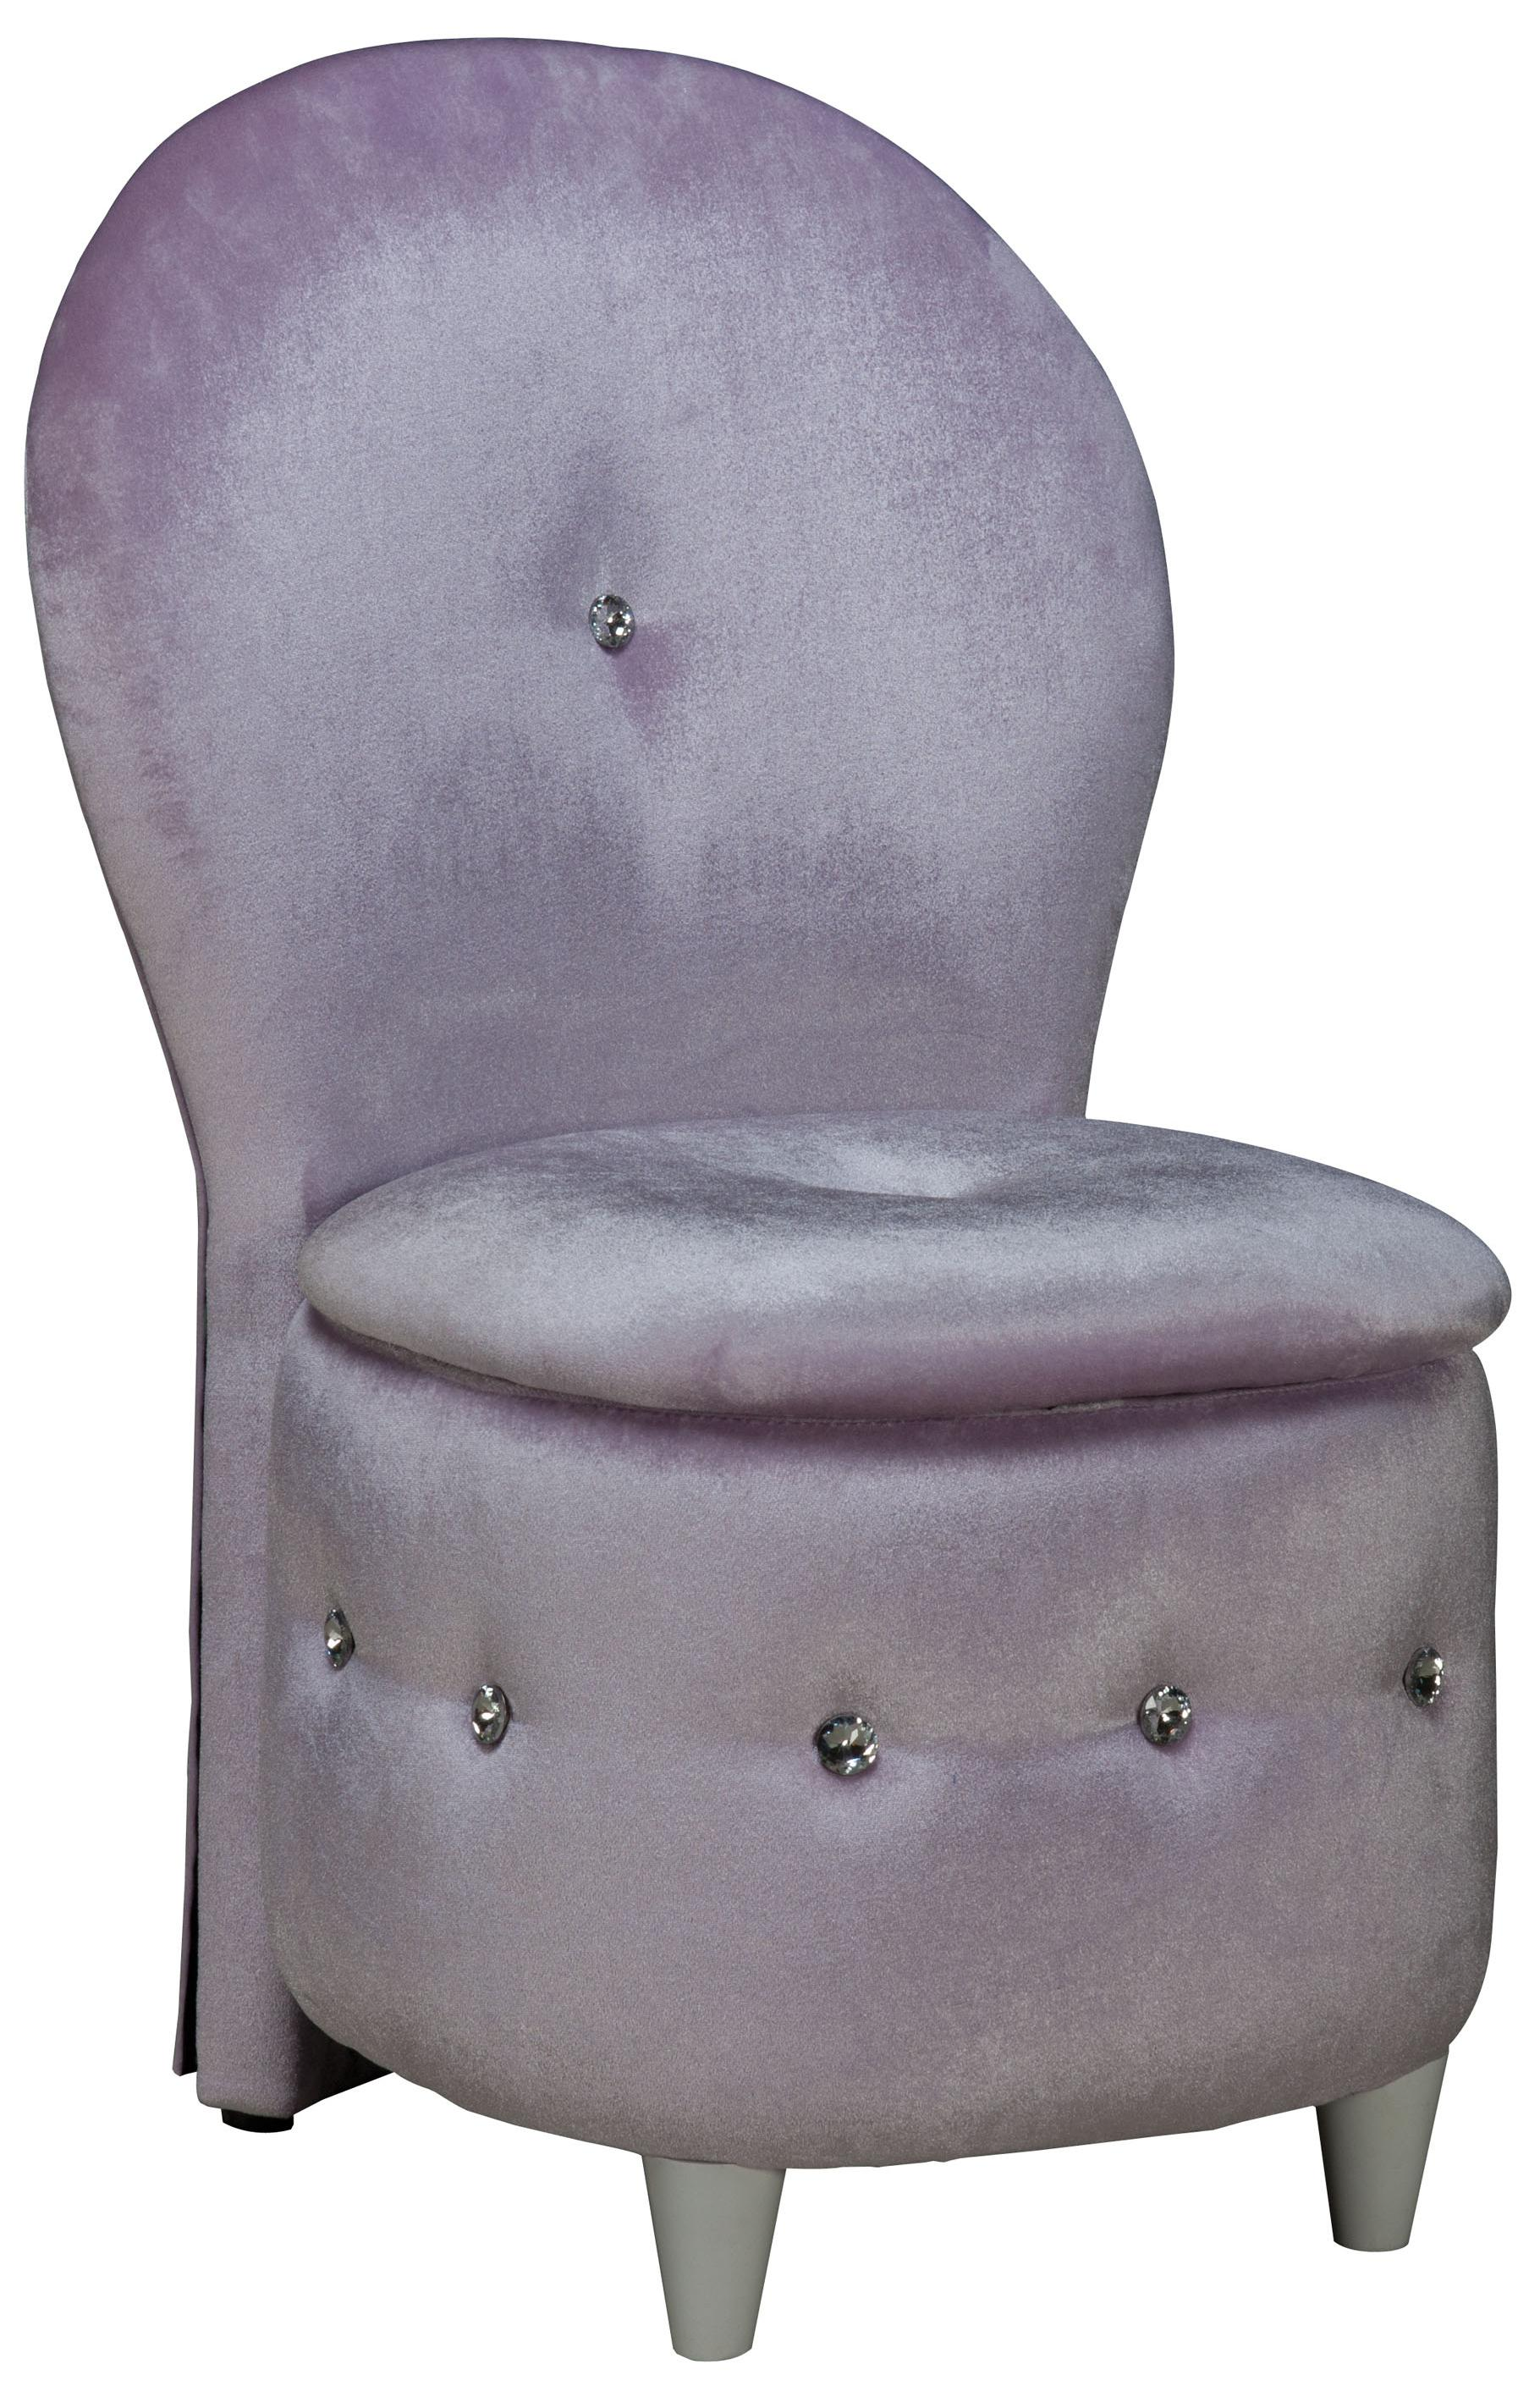 Picture of: Standard Furniture Sit N Store Lavendar Velvet Chair With Storage Cushion Jacksonville Furniture Mart Upholstered Chair